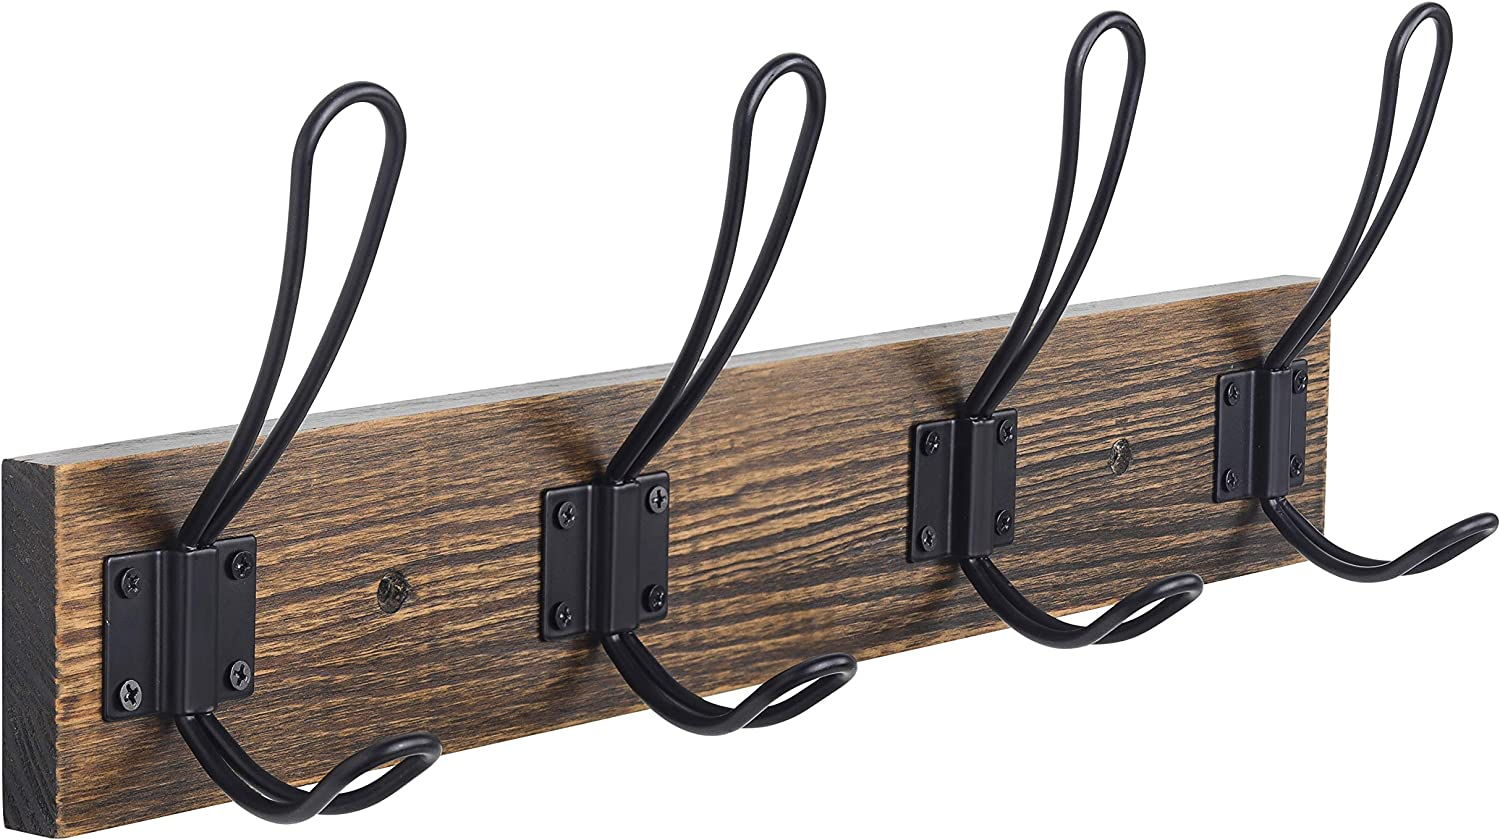 Rustic Coat Rack, Wall Mounted Coat Hook with 4 Farmhouse Hooks, Solid Pine Wood, Perfect Touch for Your Entryway Bathroom Kitchen to Hang Coat Clothes Hat Purse Bag Towel Robes (Brown)